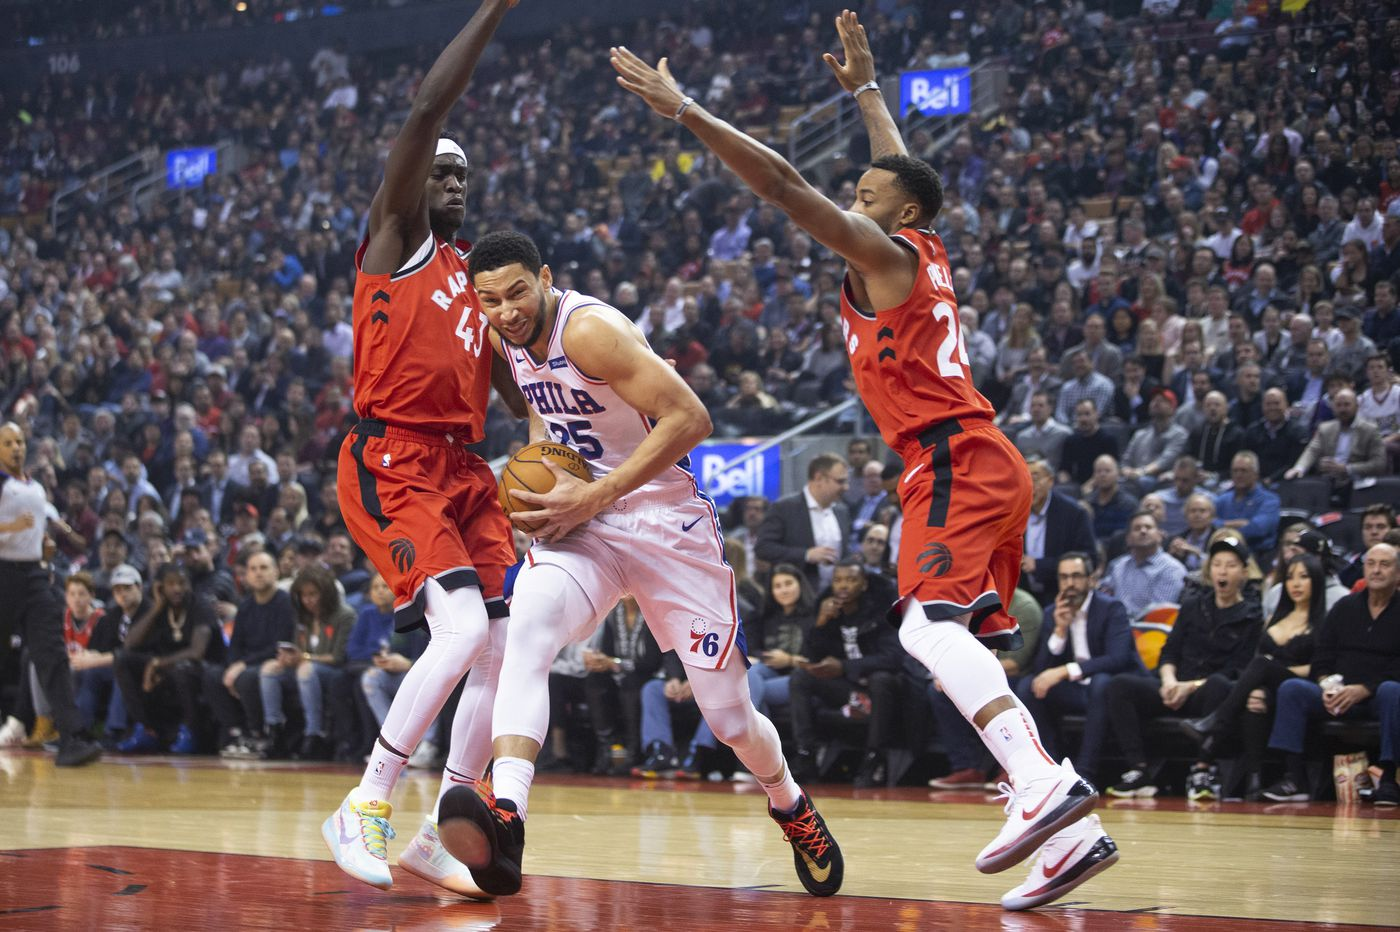 Raptors hold off Sixers, 101-96, on a night when Joel Embiid fails to score a point